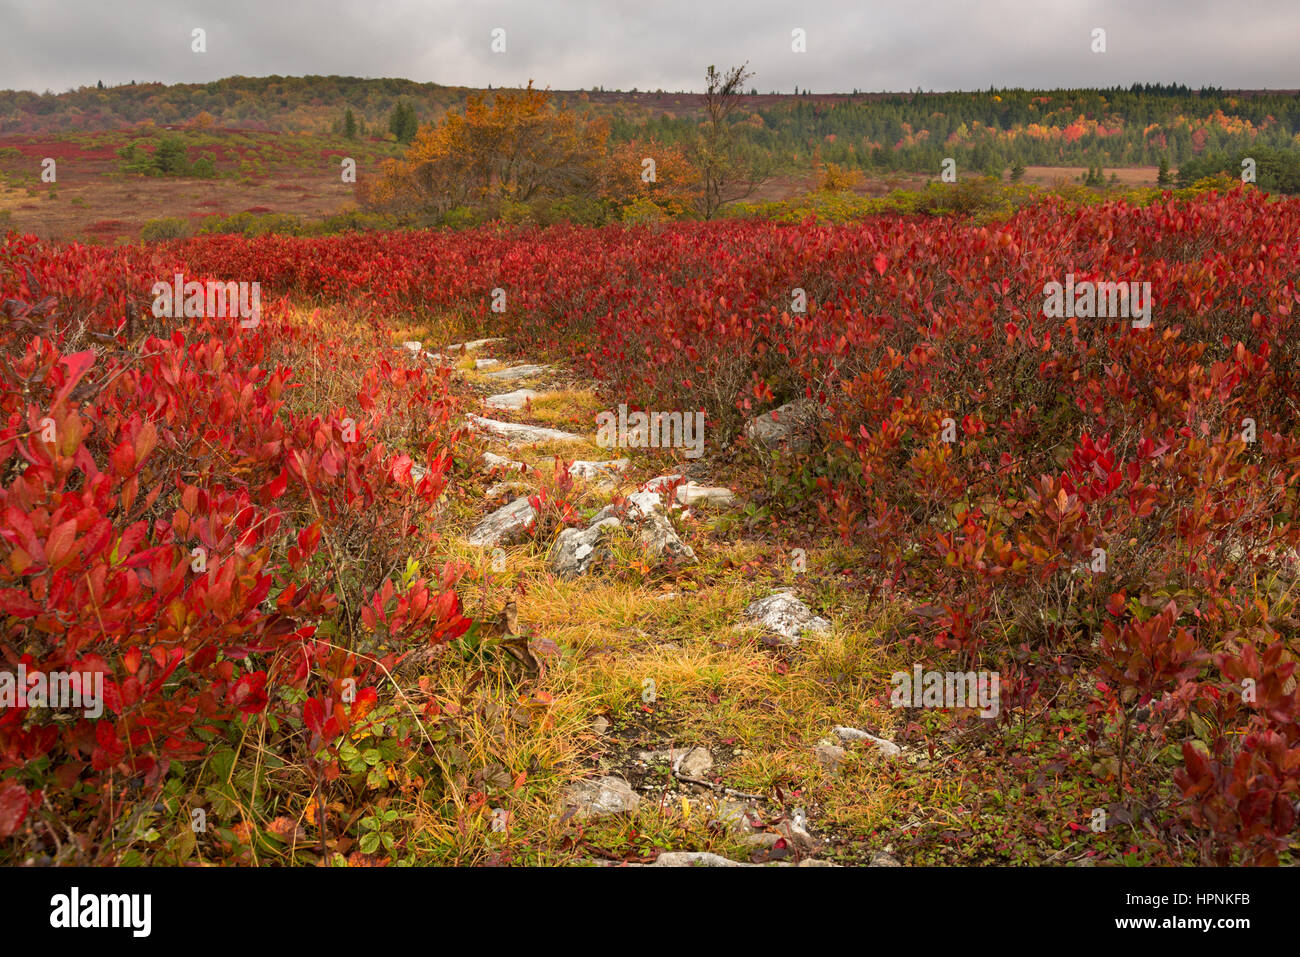 Red autumn leaves by rocky and stony path across Dolly Sods Wilderness area in West Virginia - Stock Image